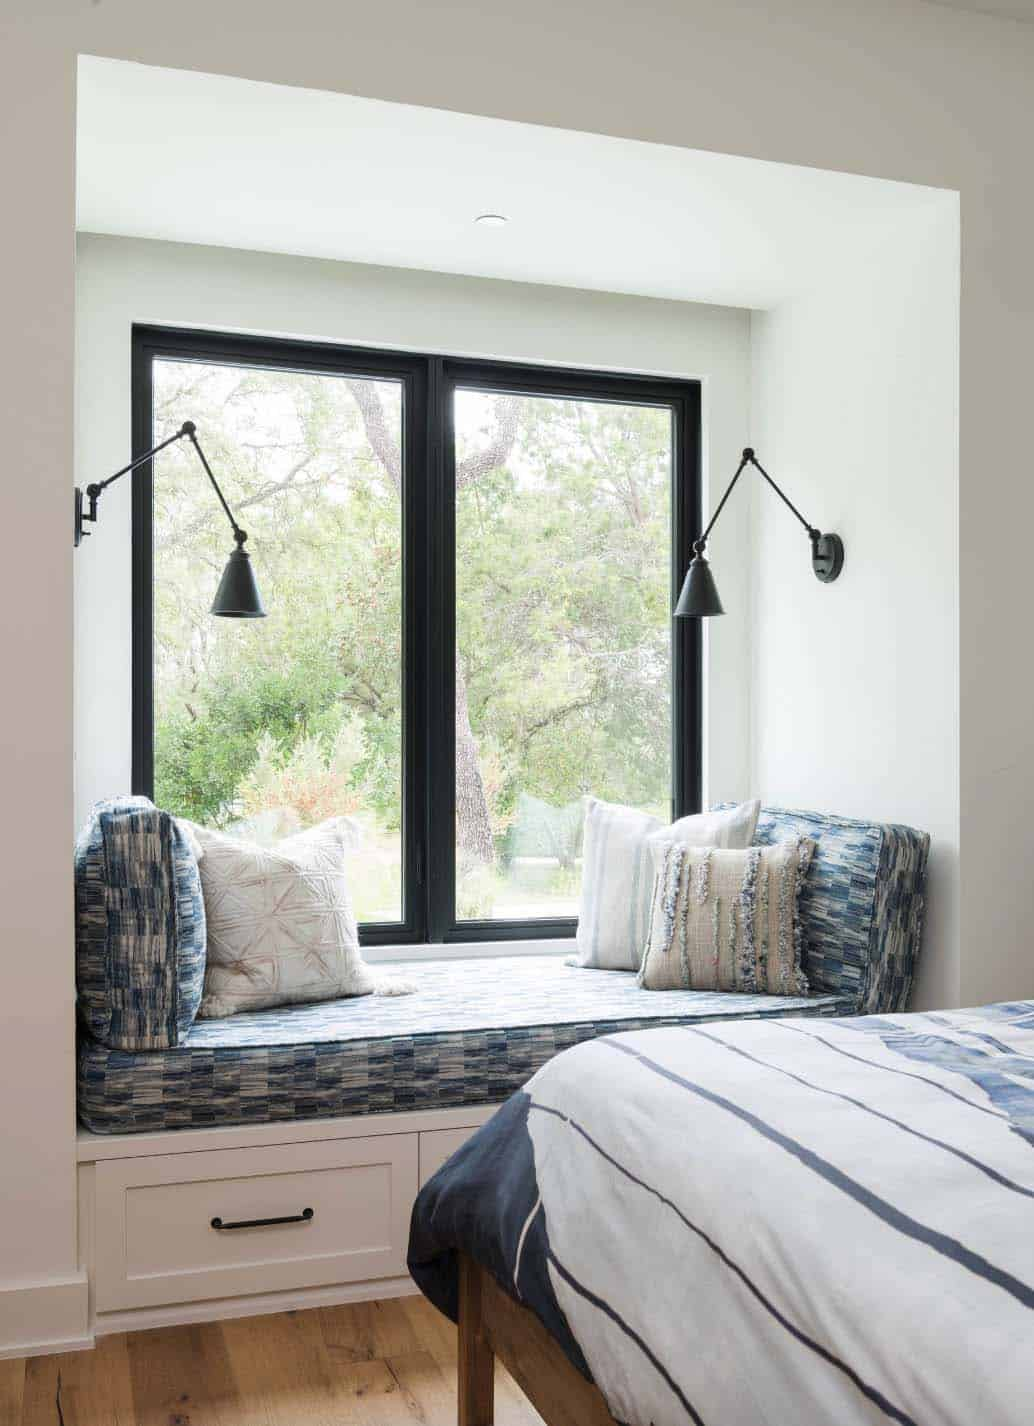 Modern farmhouse style in texas showcases fantastic design for Modern farmhouse bedroom